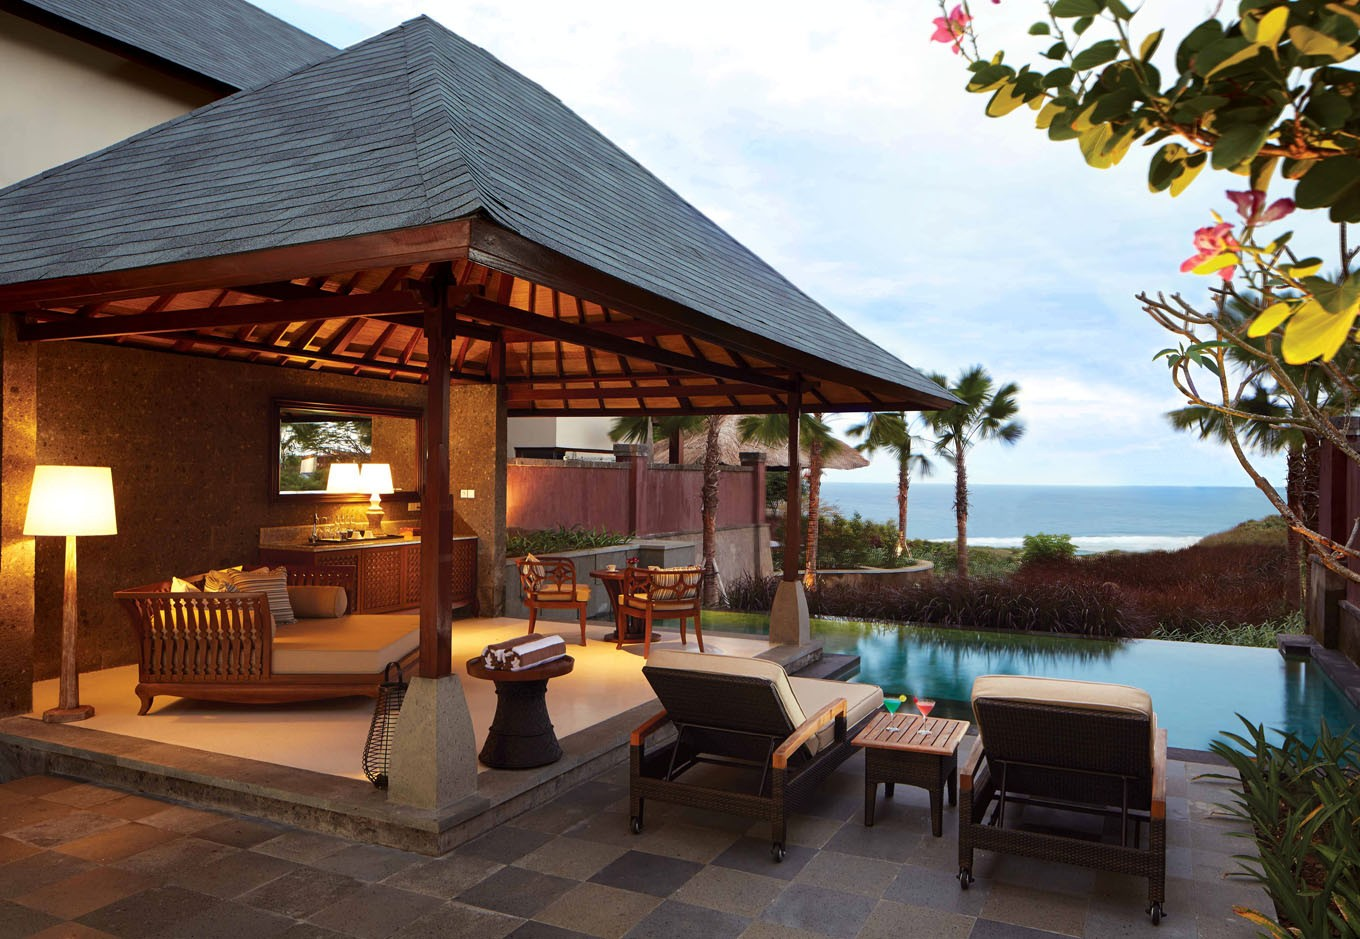 Good reasons for families to stay at grand nikko bali for Best hotel in bali 2016